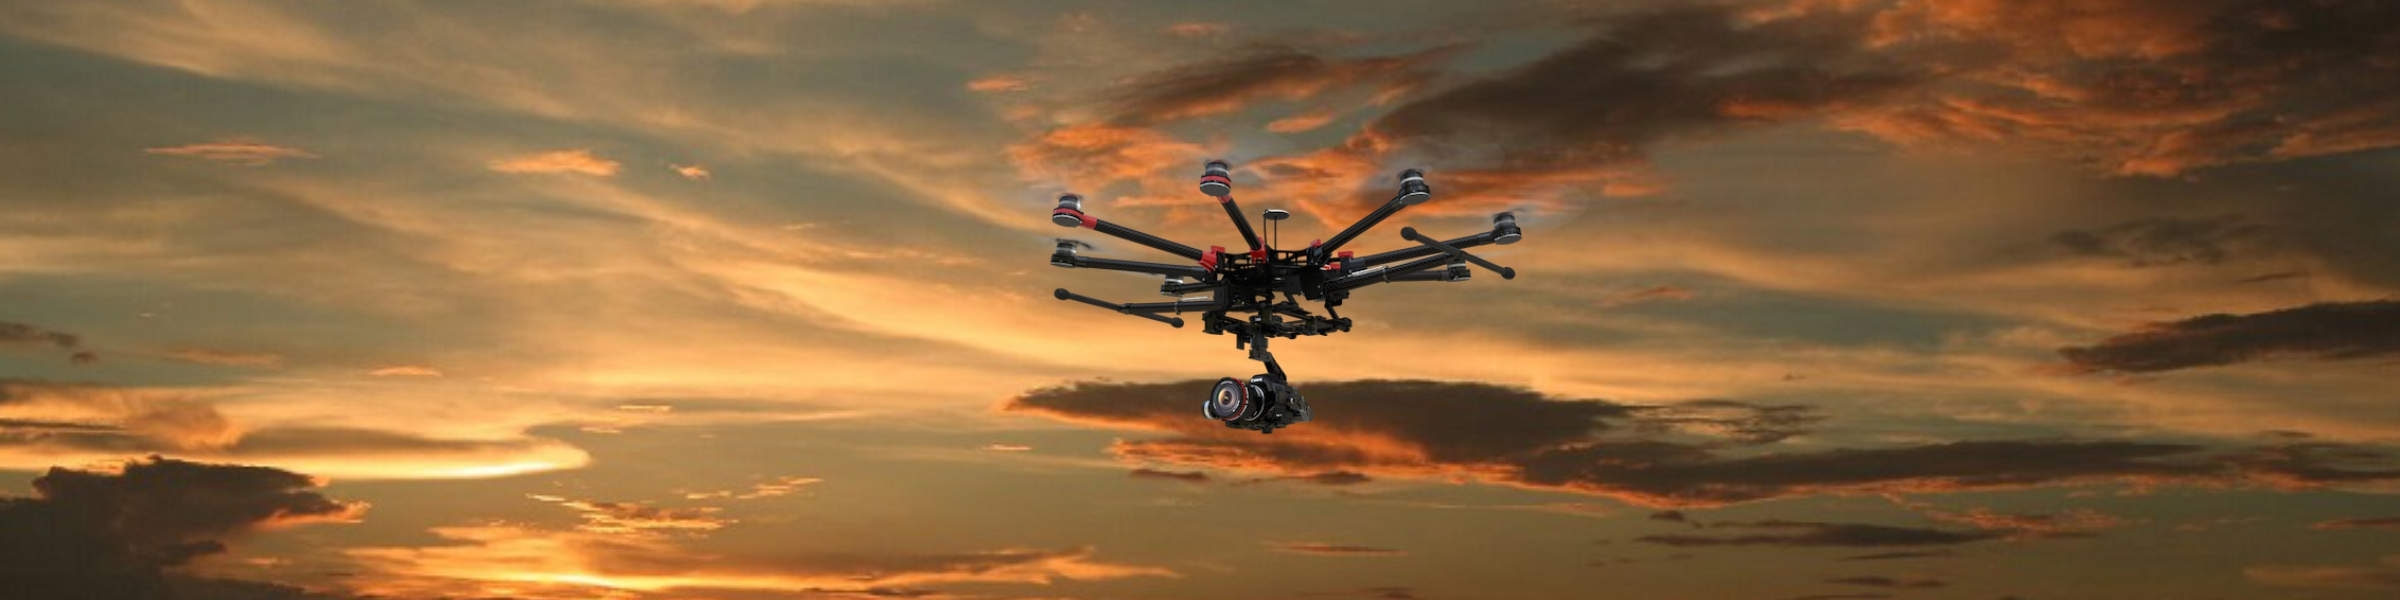 Caelus-Drones-Drone-Major-Consultancy-Services-Solutions-Hub